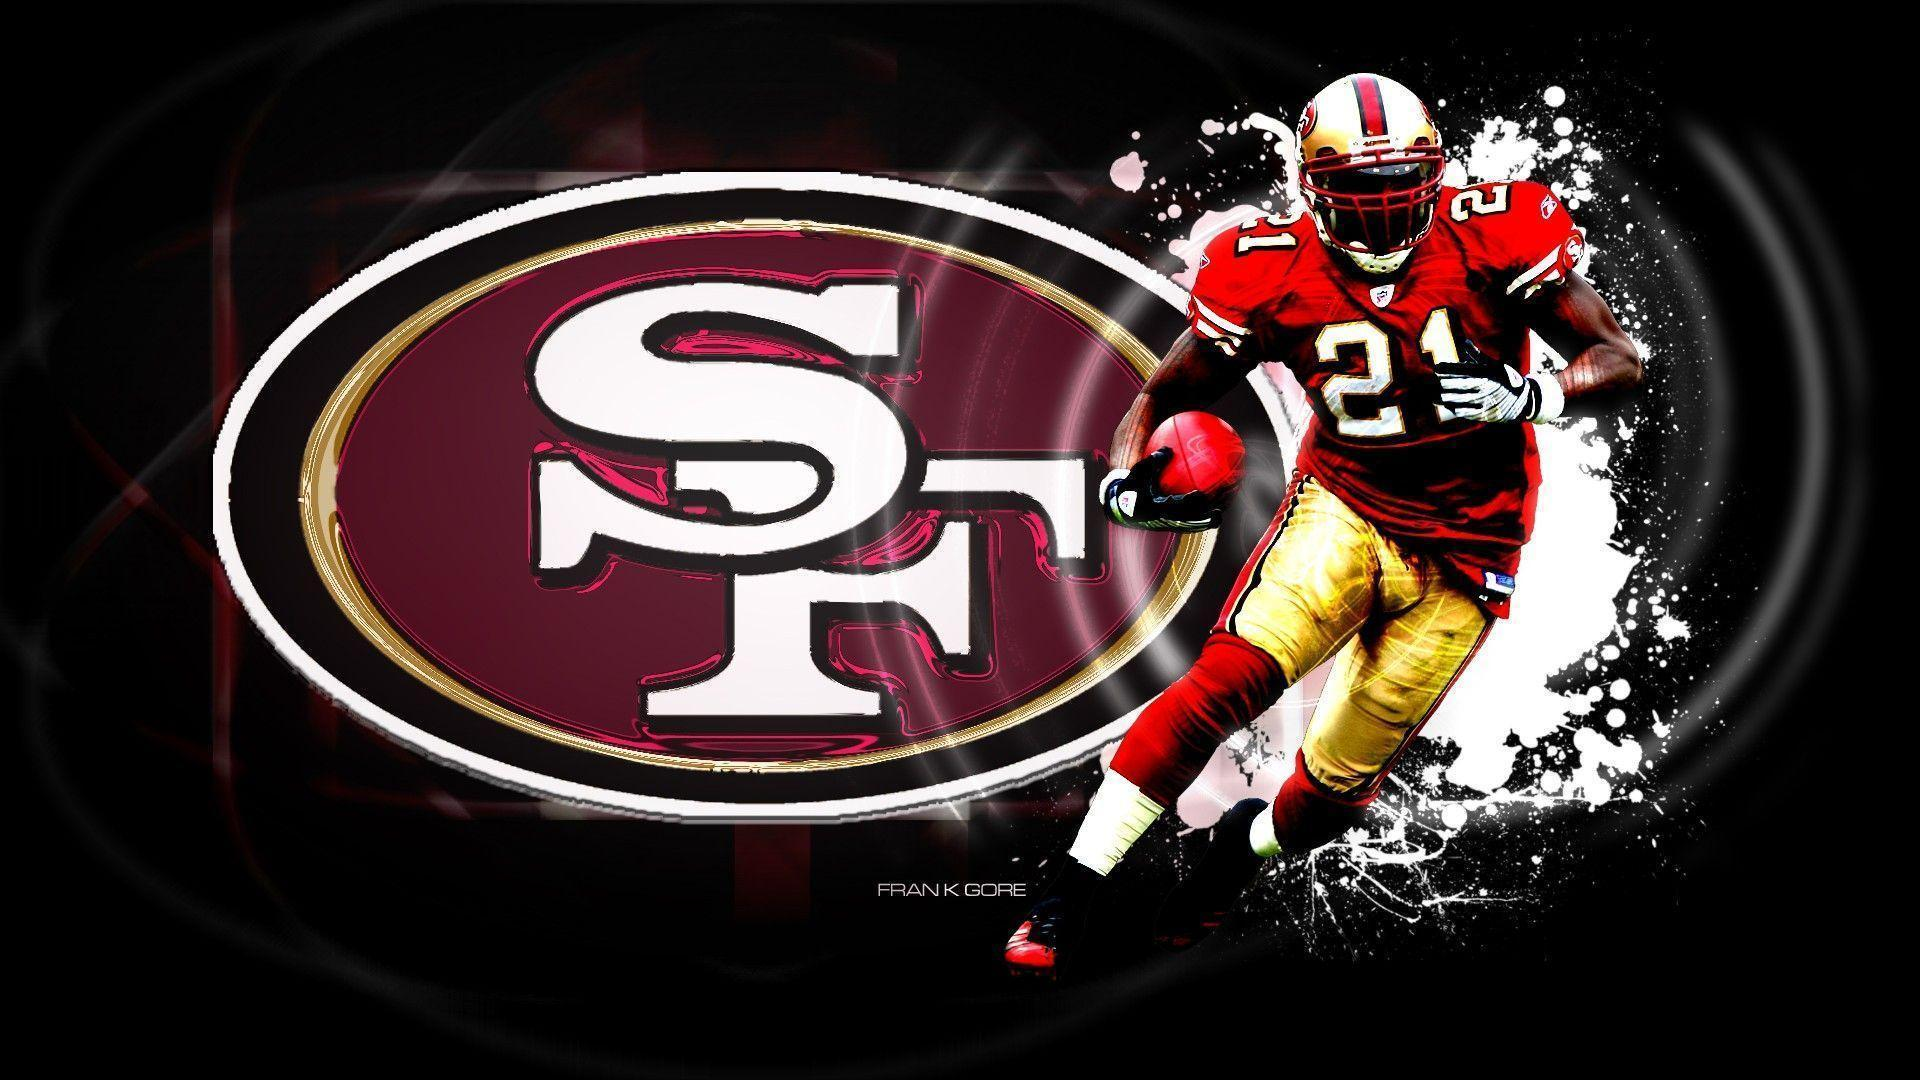 San Francisco 49ERS HD Wallpapers - HD Wallpapers Inn